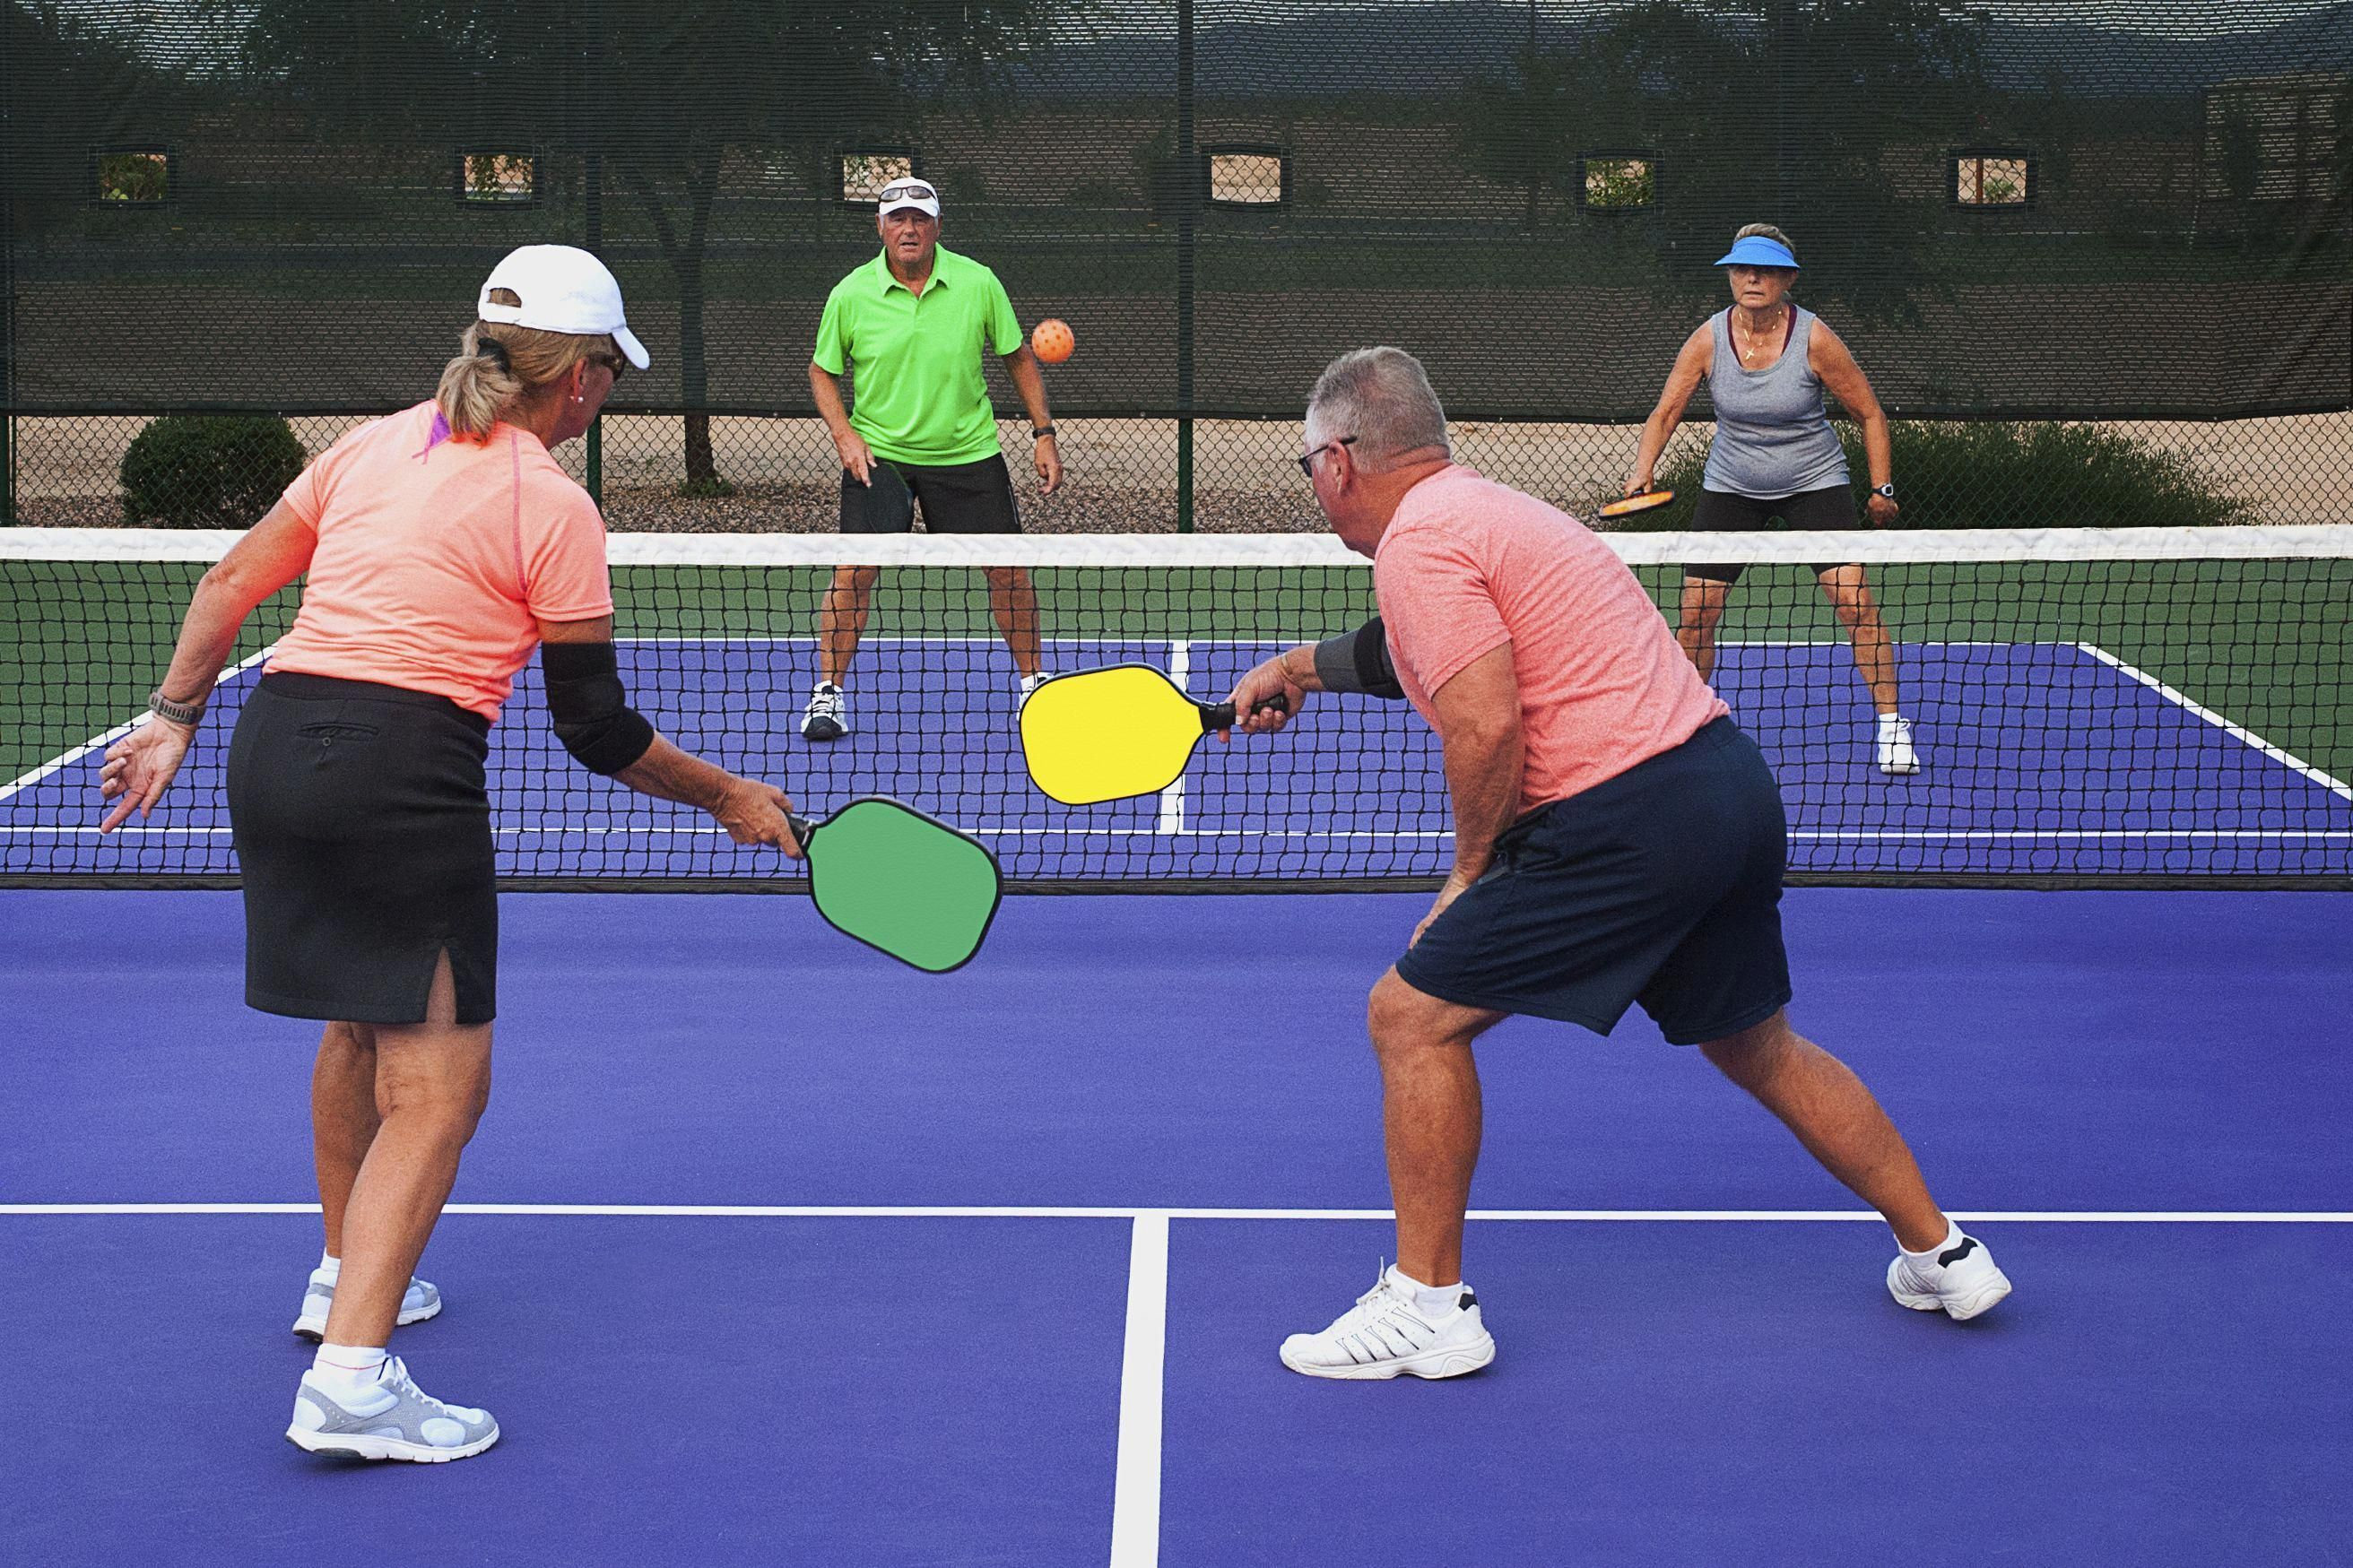 Join The Craze And Have Some Fun Pickleball Is A Racquet Sport Which Combines Elements Of Badminton Tennis And Table Te Tennis Pickleball Paddles Pickleball